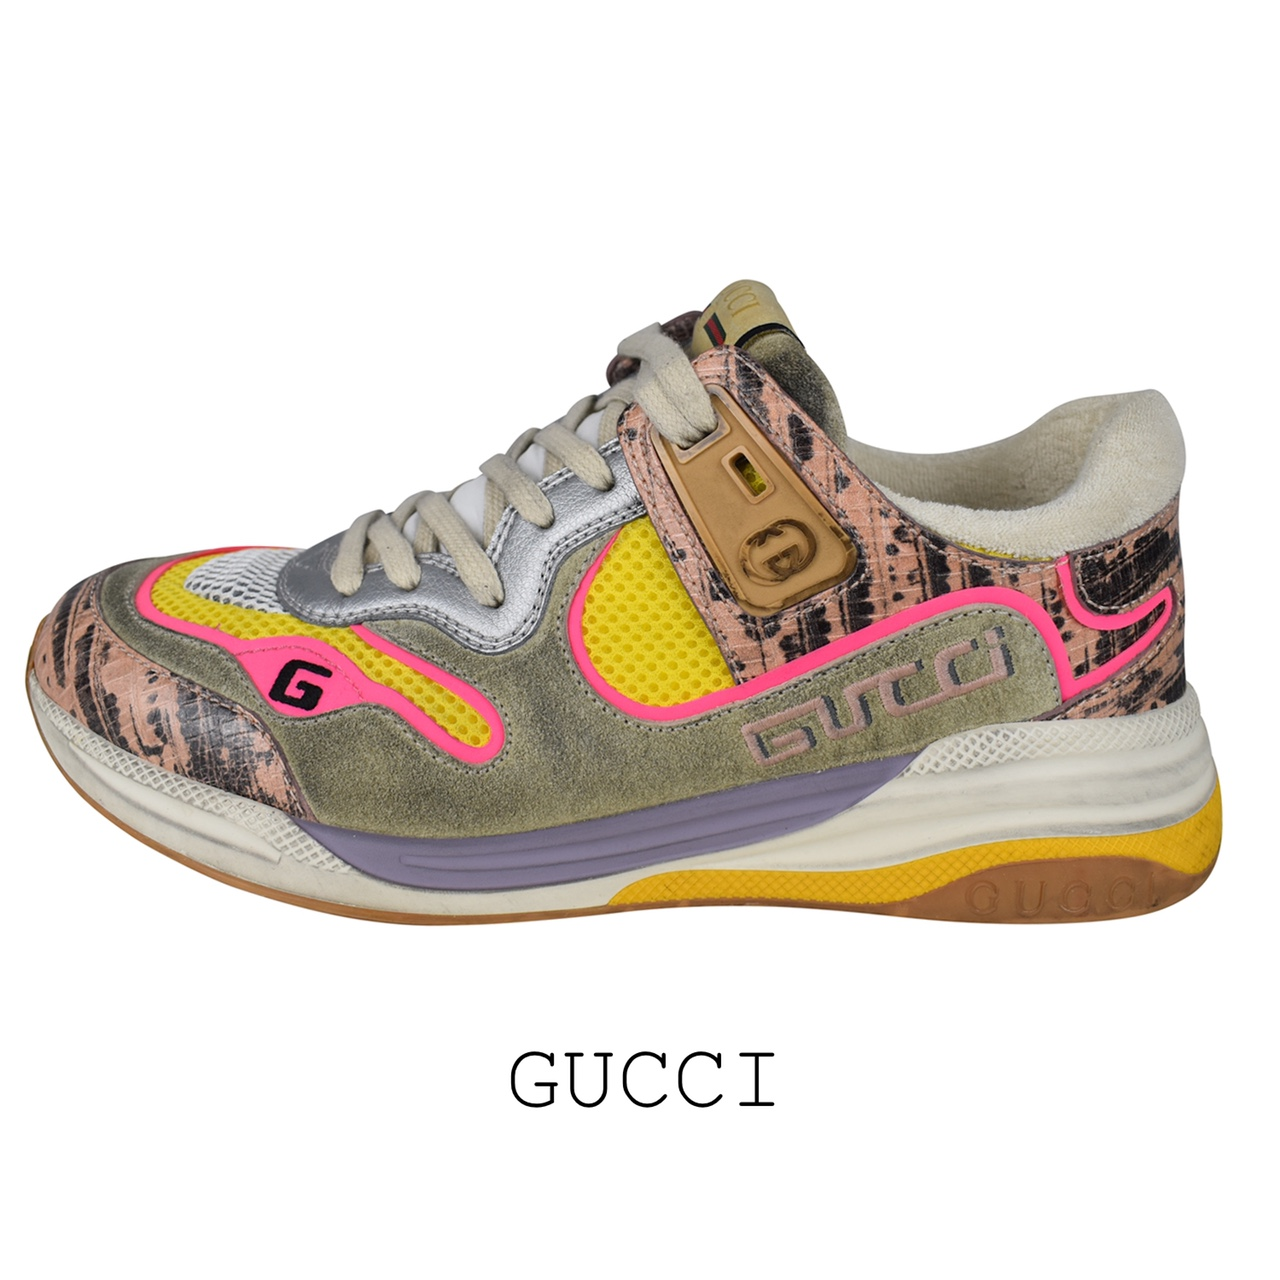 Product Image 1 - Gucci - Women's Sneakers   #gucci #guccisneakers